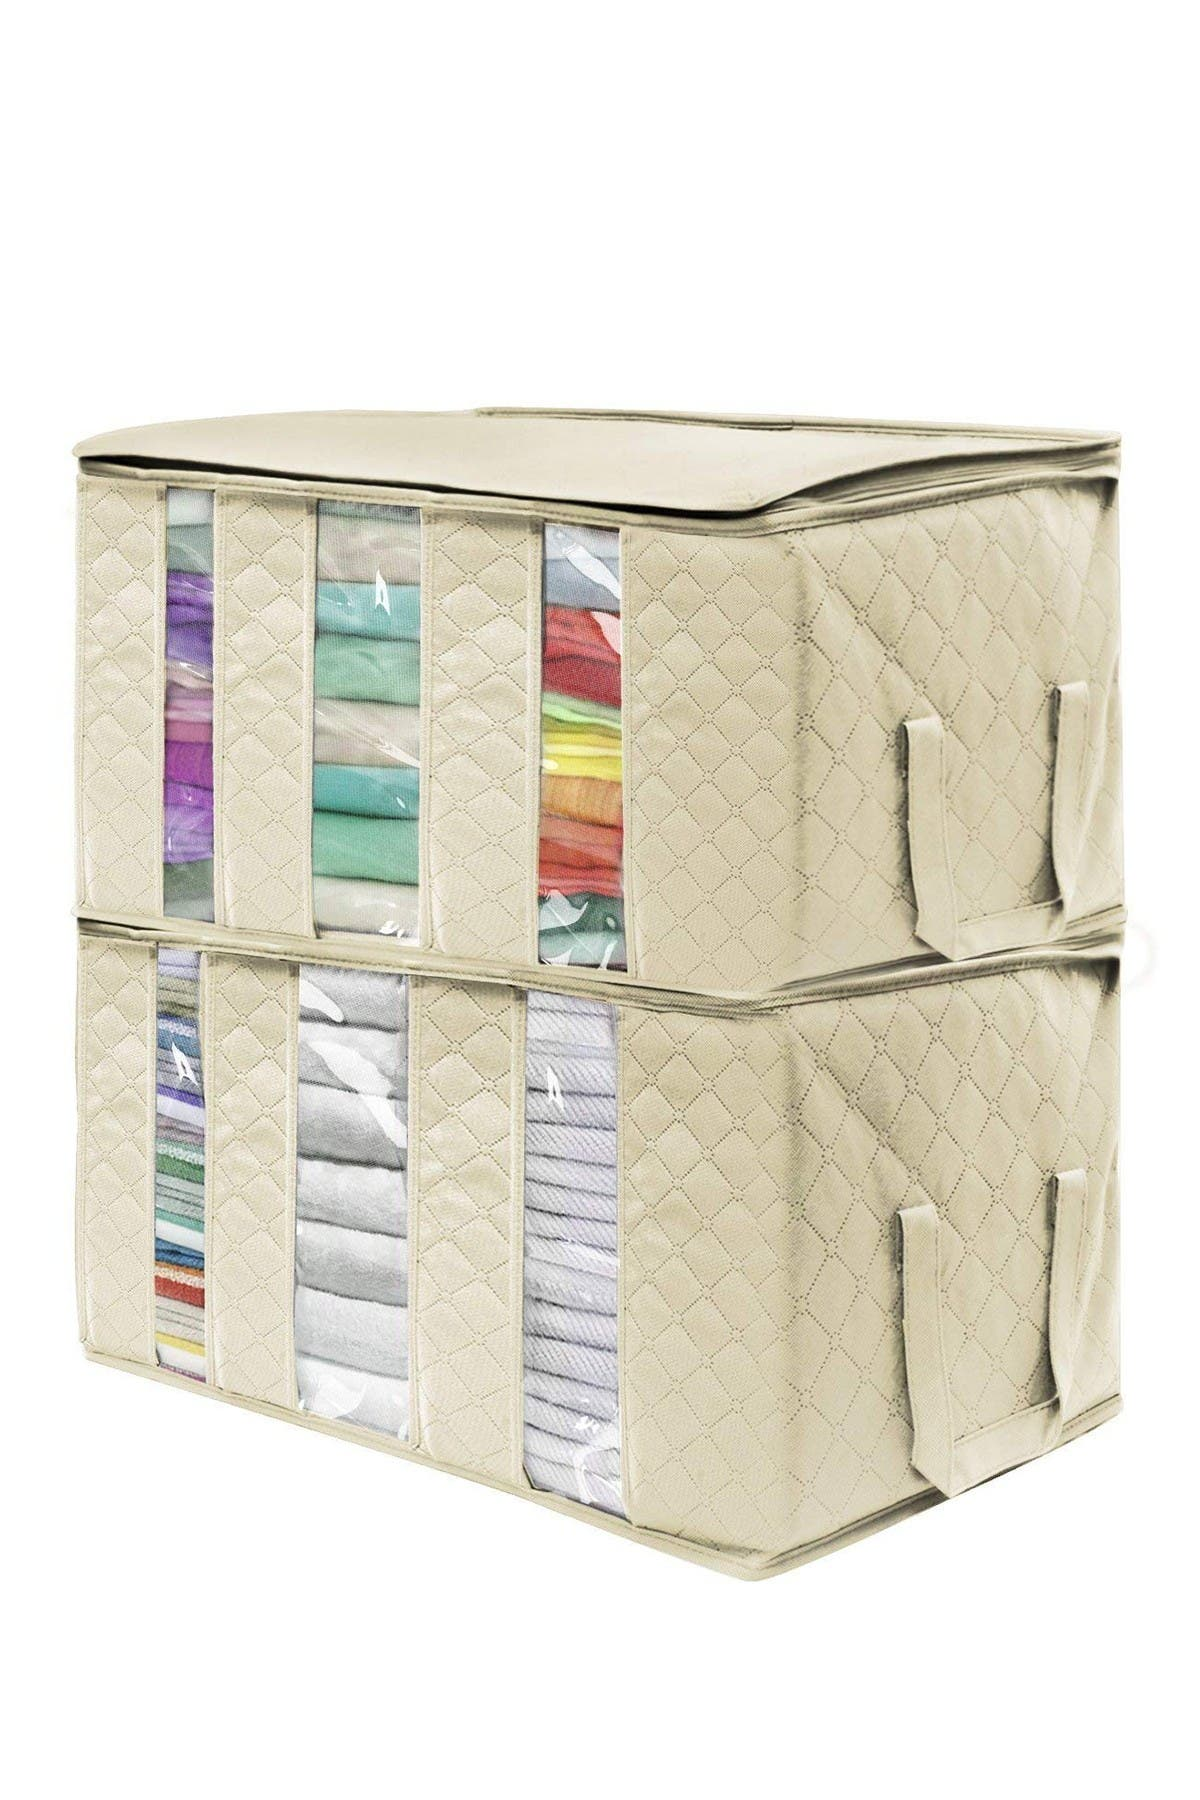 Image of Sorbus Beige Foldable Fabric Storage 3 Section Organizer Bag - Pack of 2